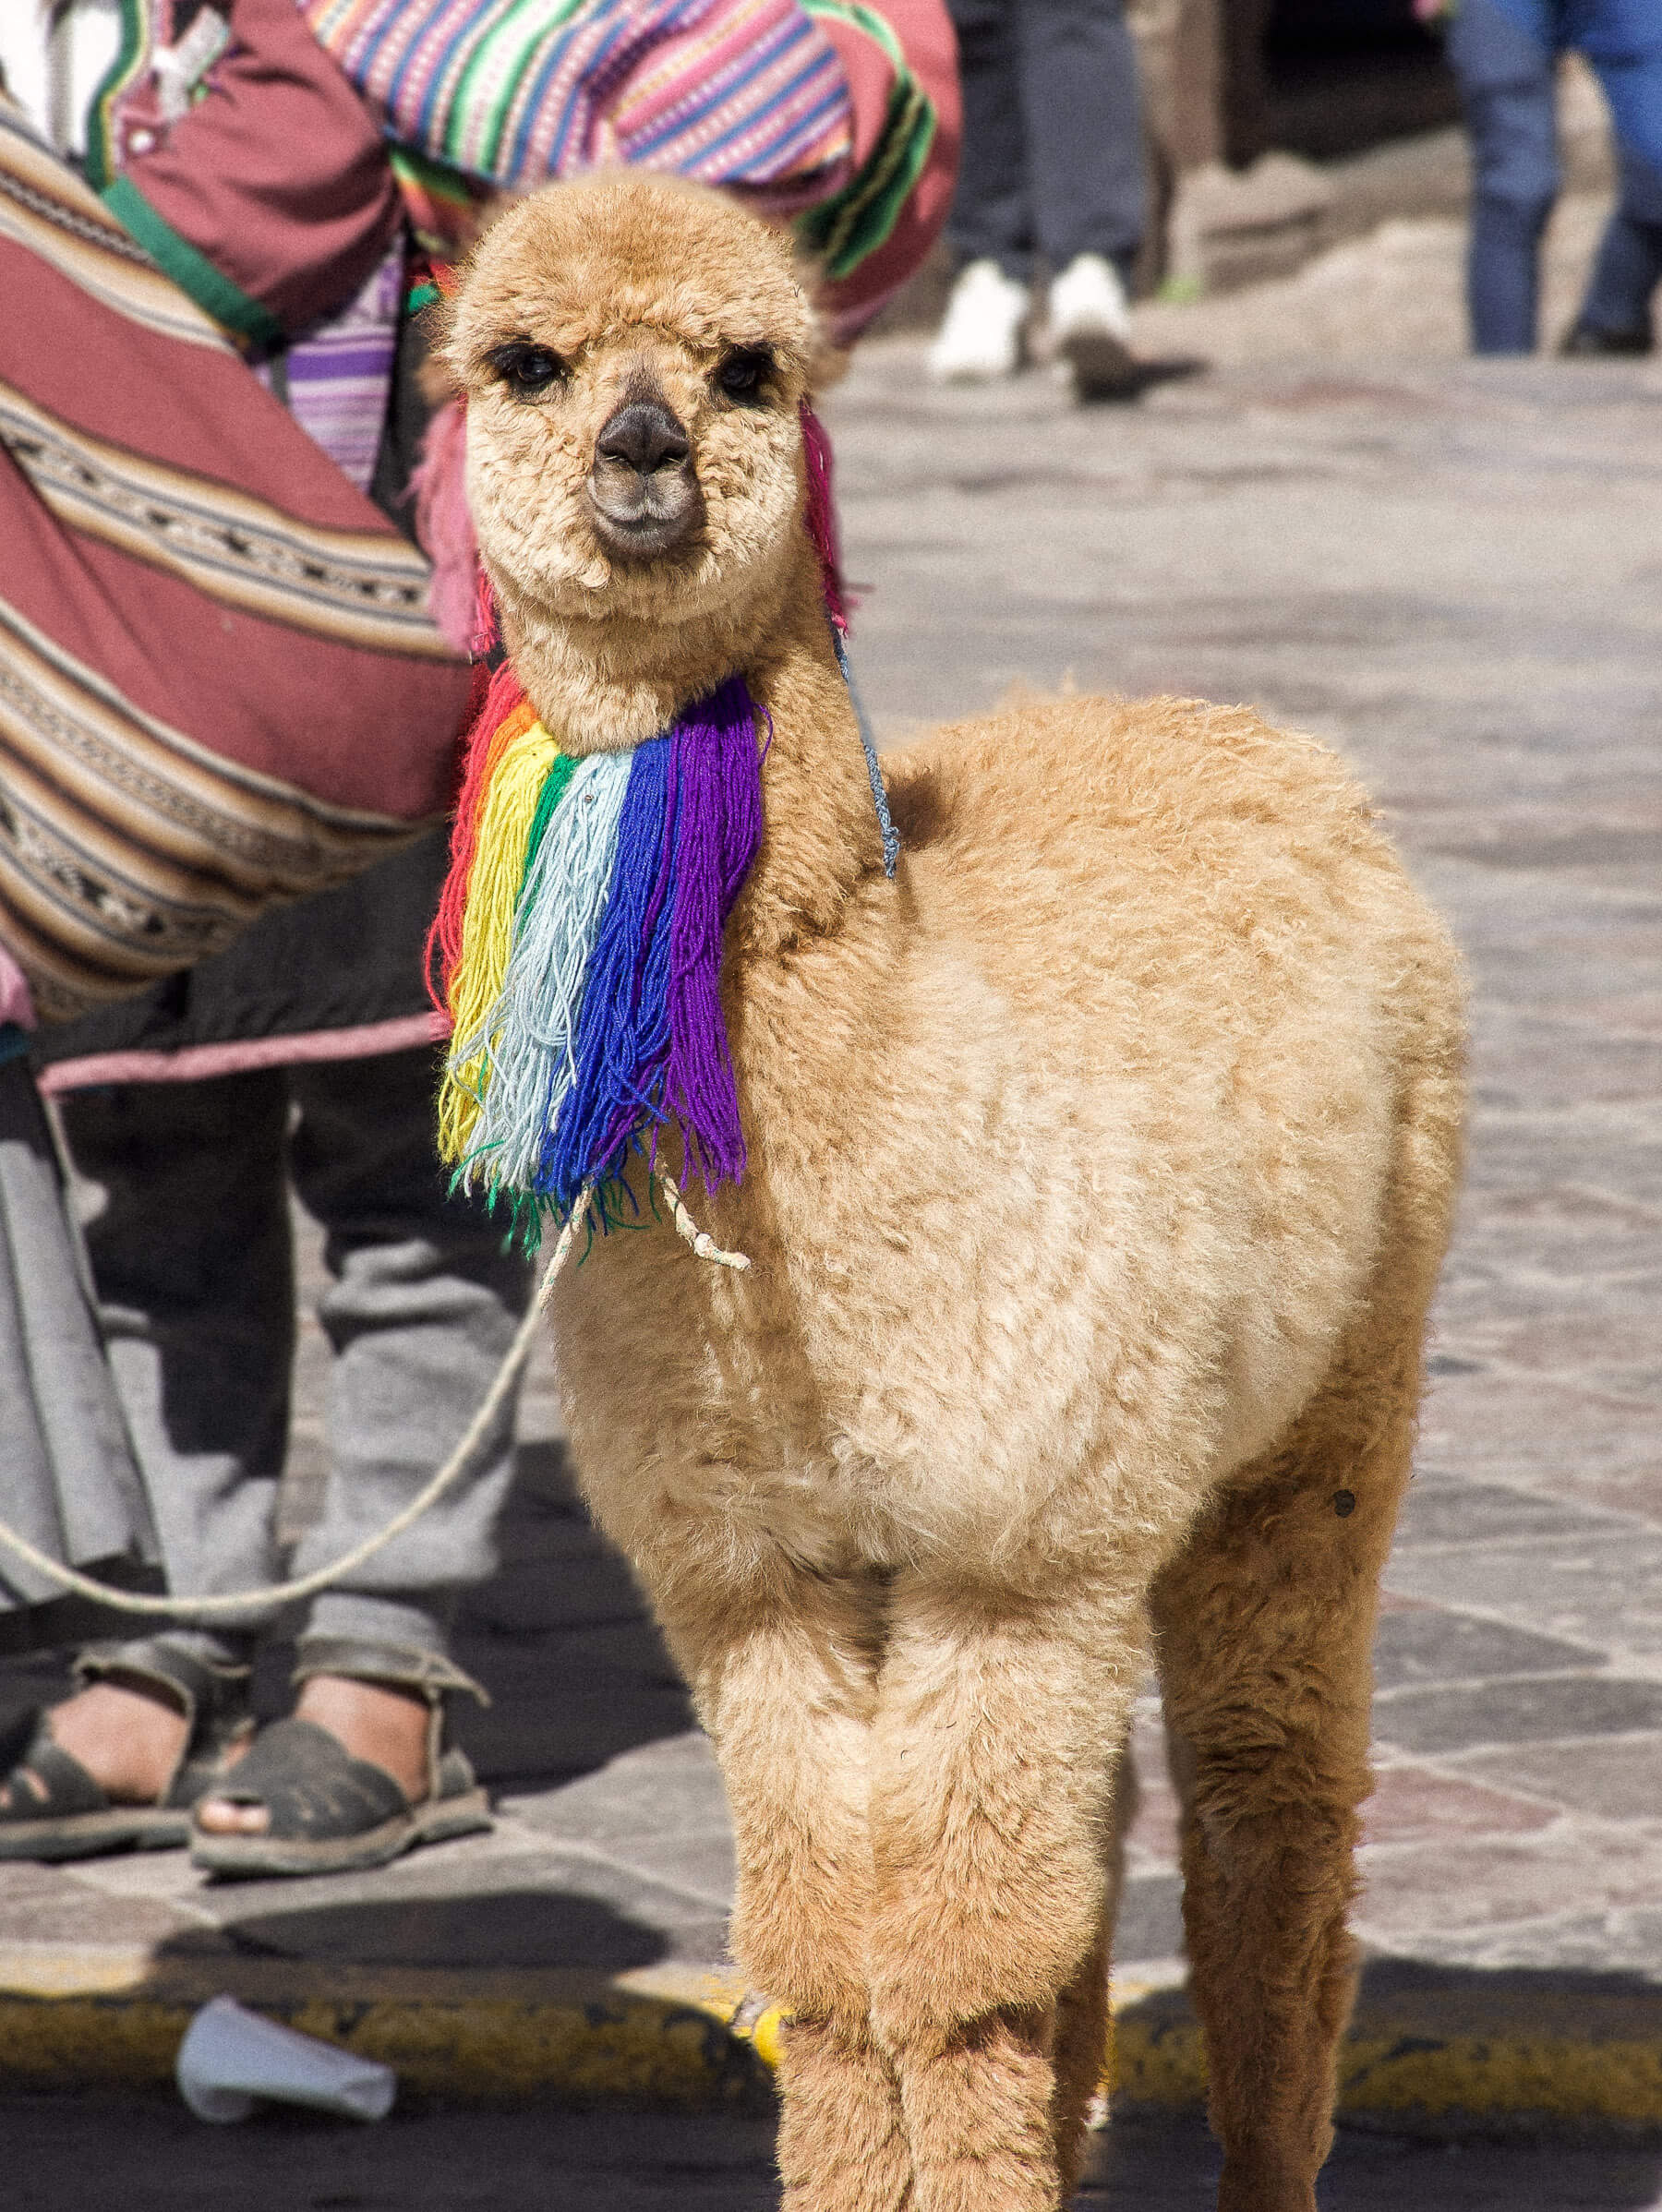 A light brown fluffy alpaca walking in the street with a colourful string necklace around his neck